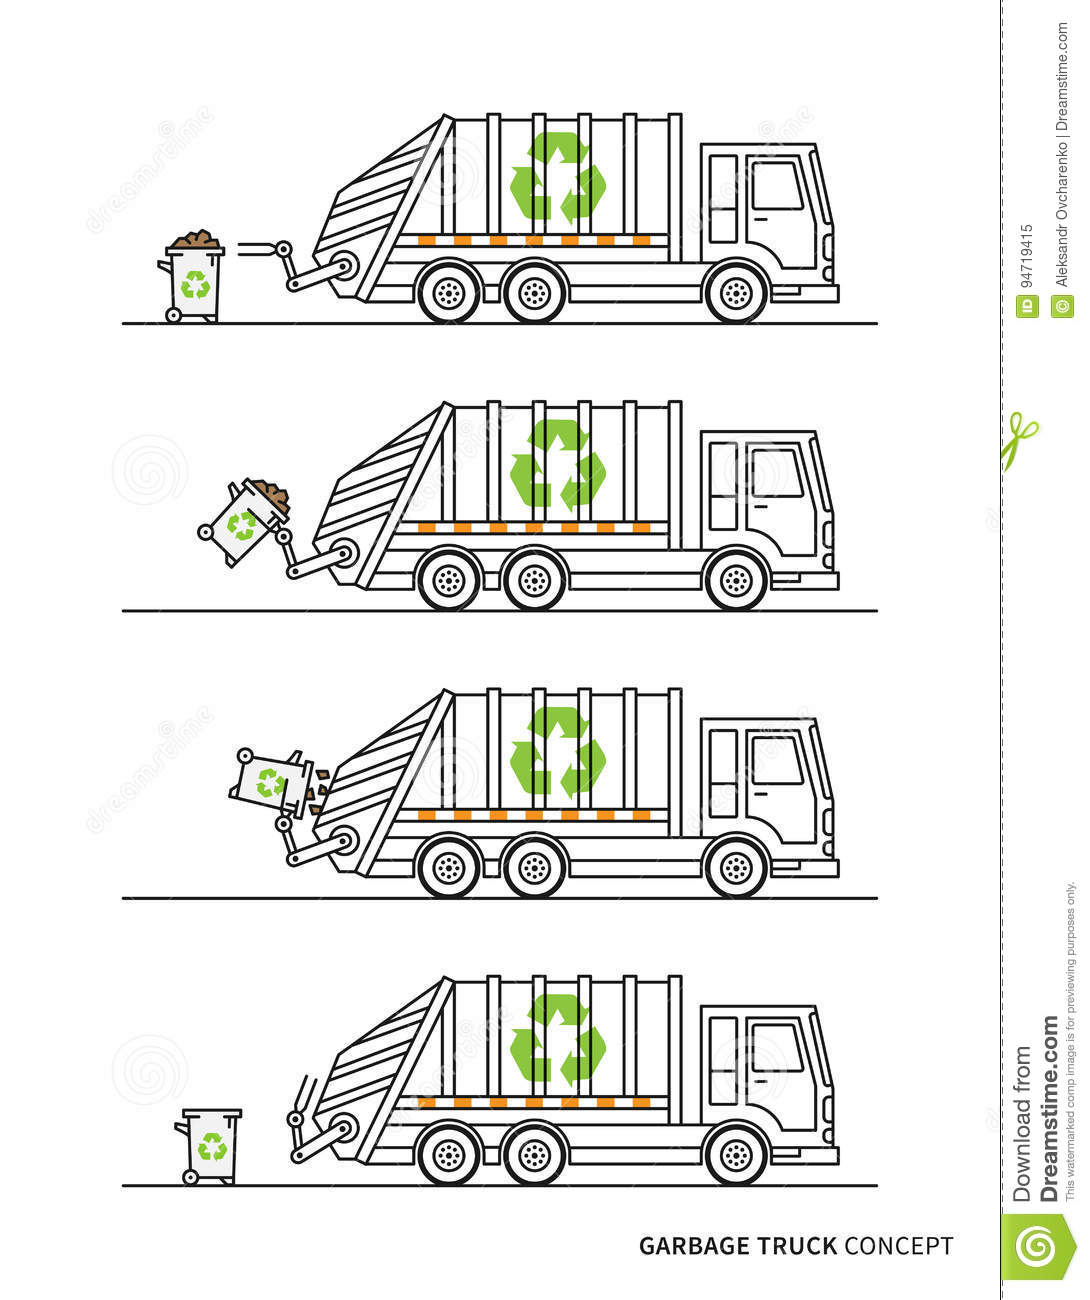 hight resolution of garbage truck diagram